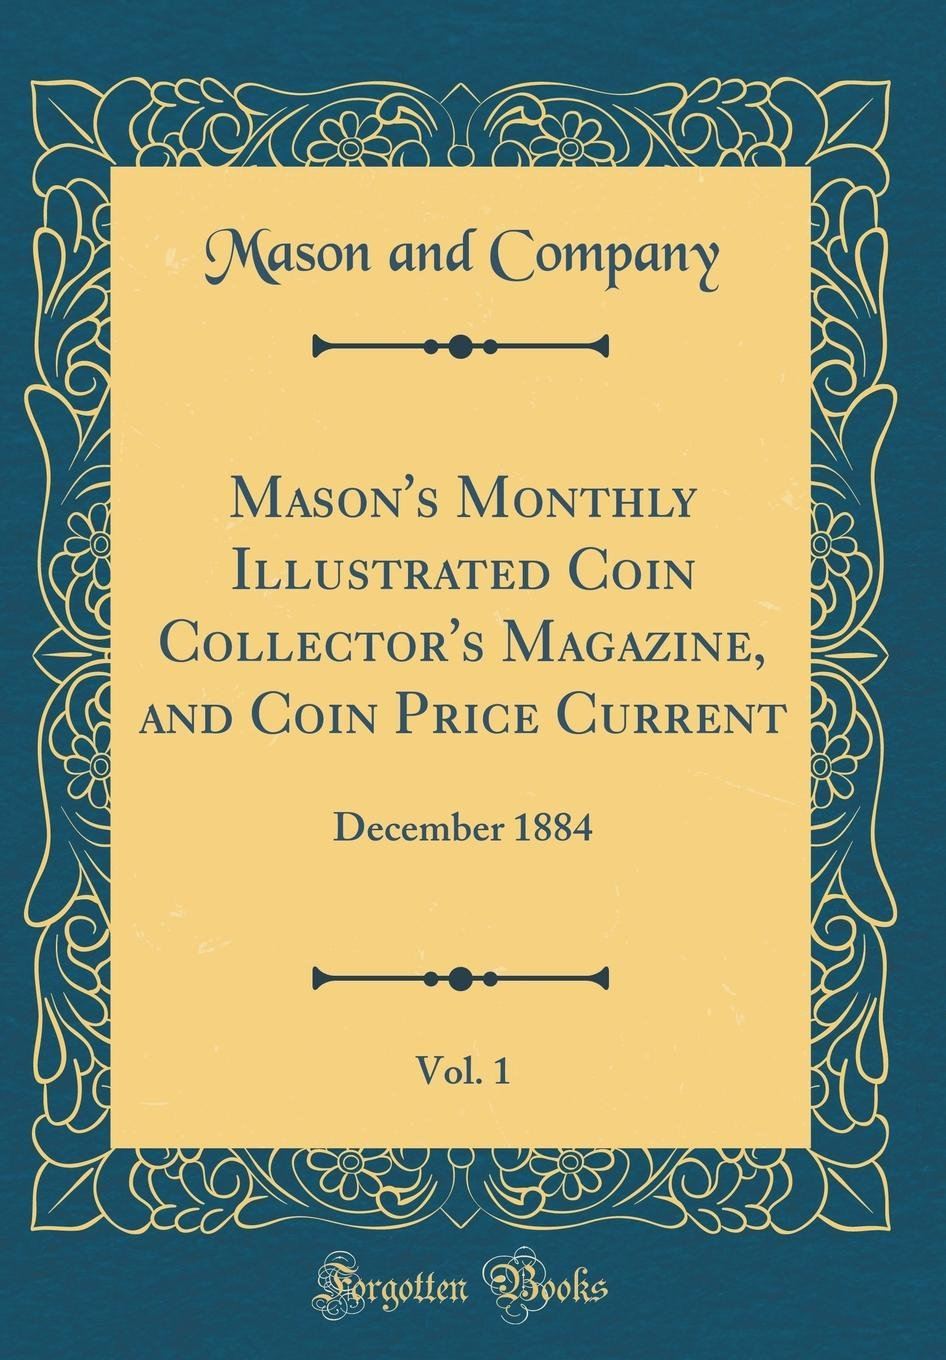 Mason's Monthly Illustrated Coin Collector's Magazine, and Coin Price Current, Vol. 1: December 1884 (Classic Reprint) pdf